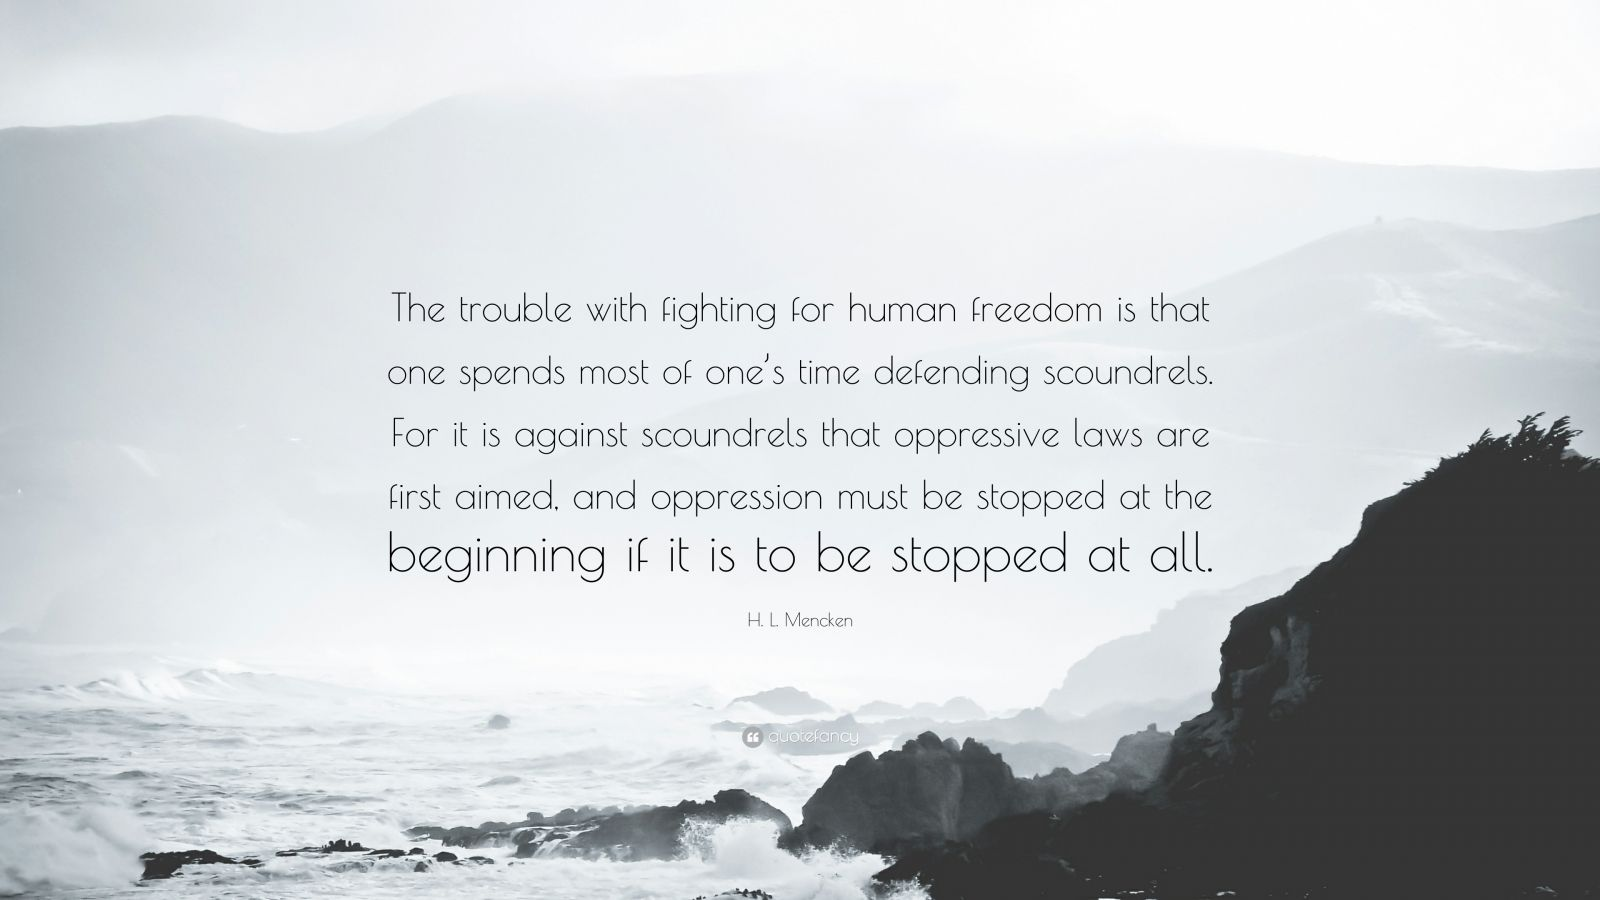 "H. L. Mencken Quote: ""The trouble with fighting for human freedom is that one spends most of one's time defending scoundrels. For it is against scoundrels that oppressive laws are first aimed, and oppression must be stopped at the beginning if it is to be stopped at all."""